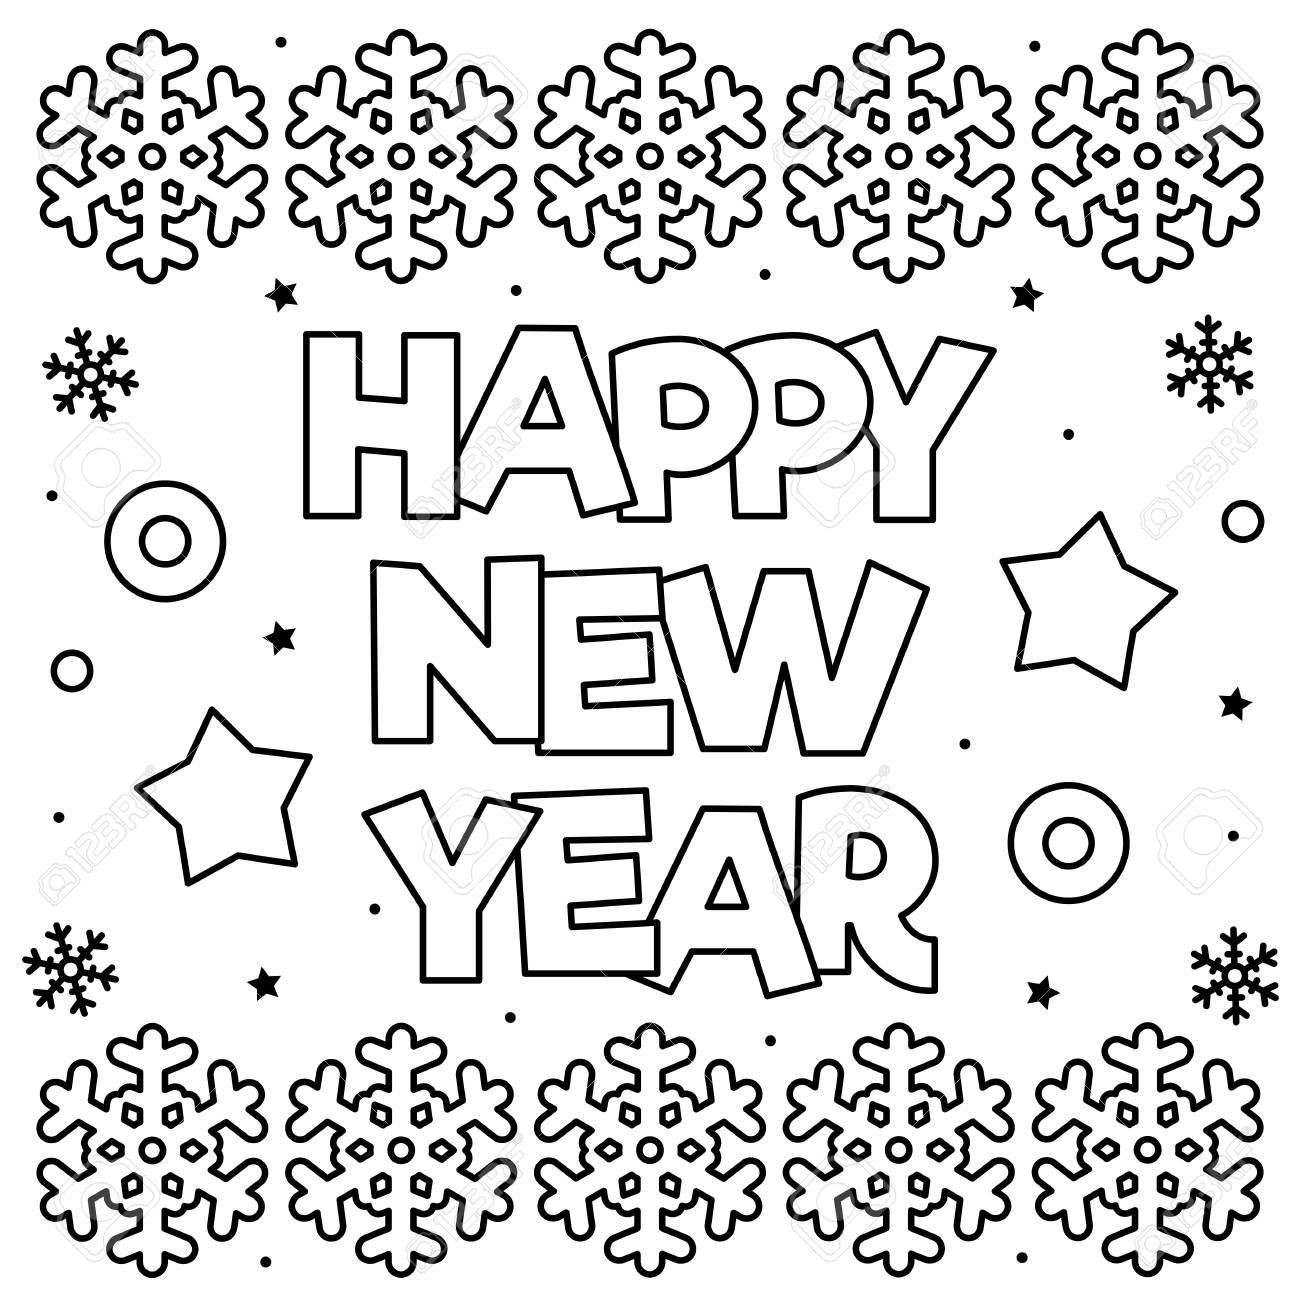 Happy New Year Coloring Page Black And White Vector Illustration Royalty Free Cliparts Vectors And Stock Illustration Image 111372782